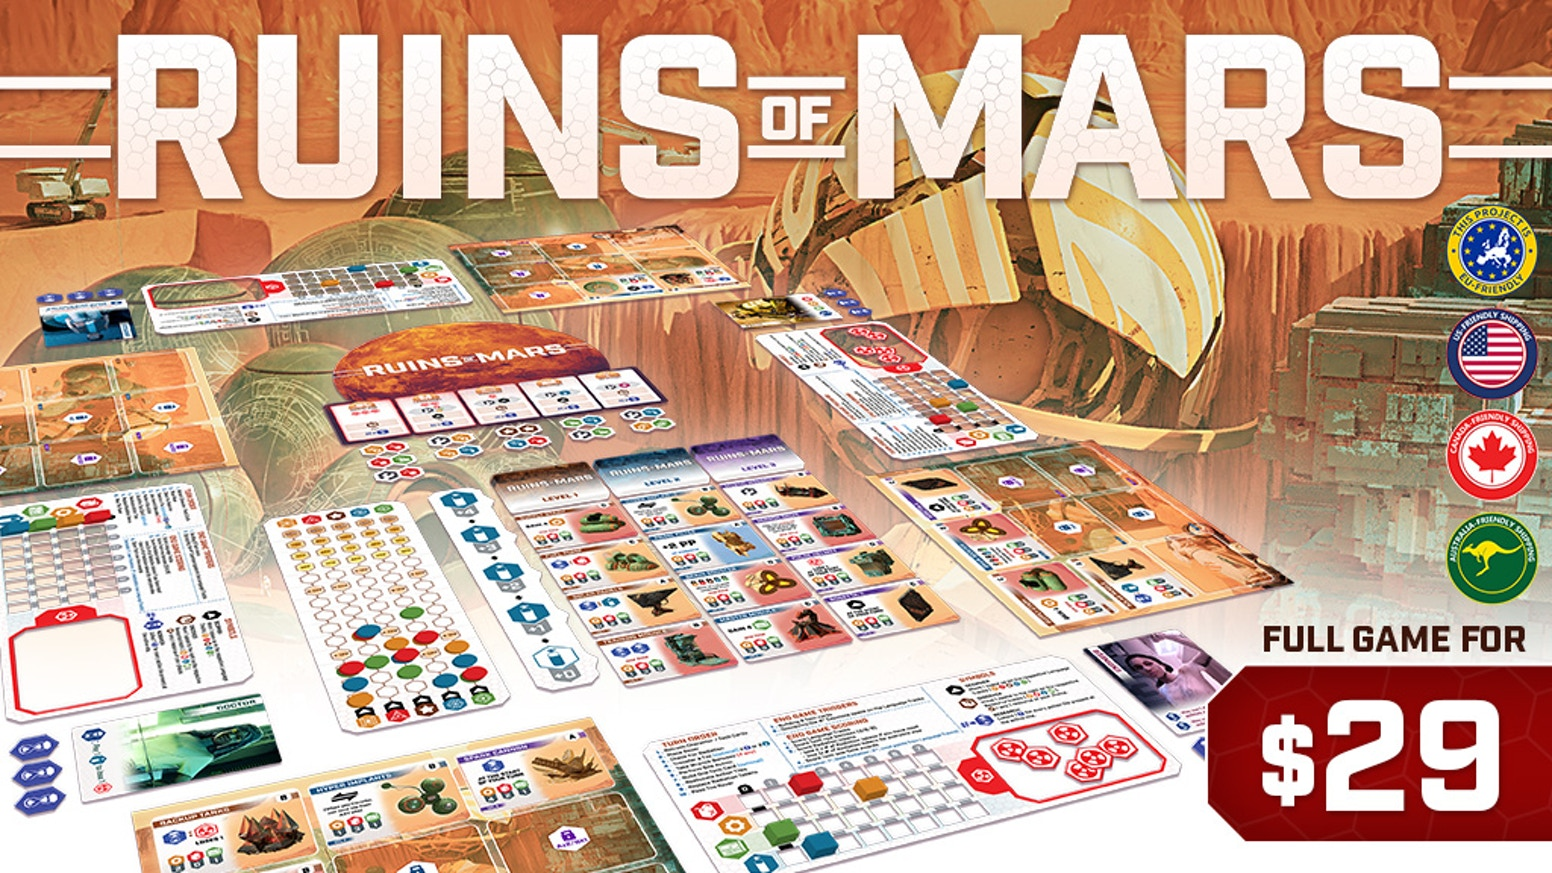 Ruins of Mars is an action selection, engine builder with a unique shifting resource mechanism that makes each action vary turn-by-turn